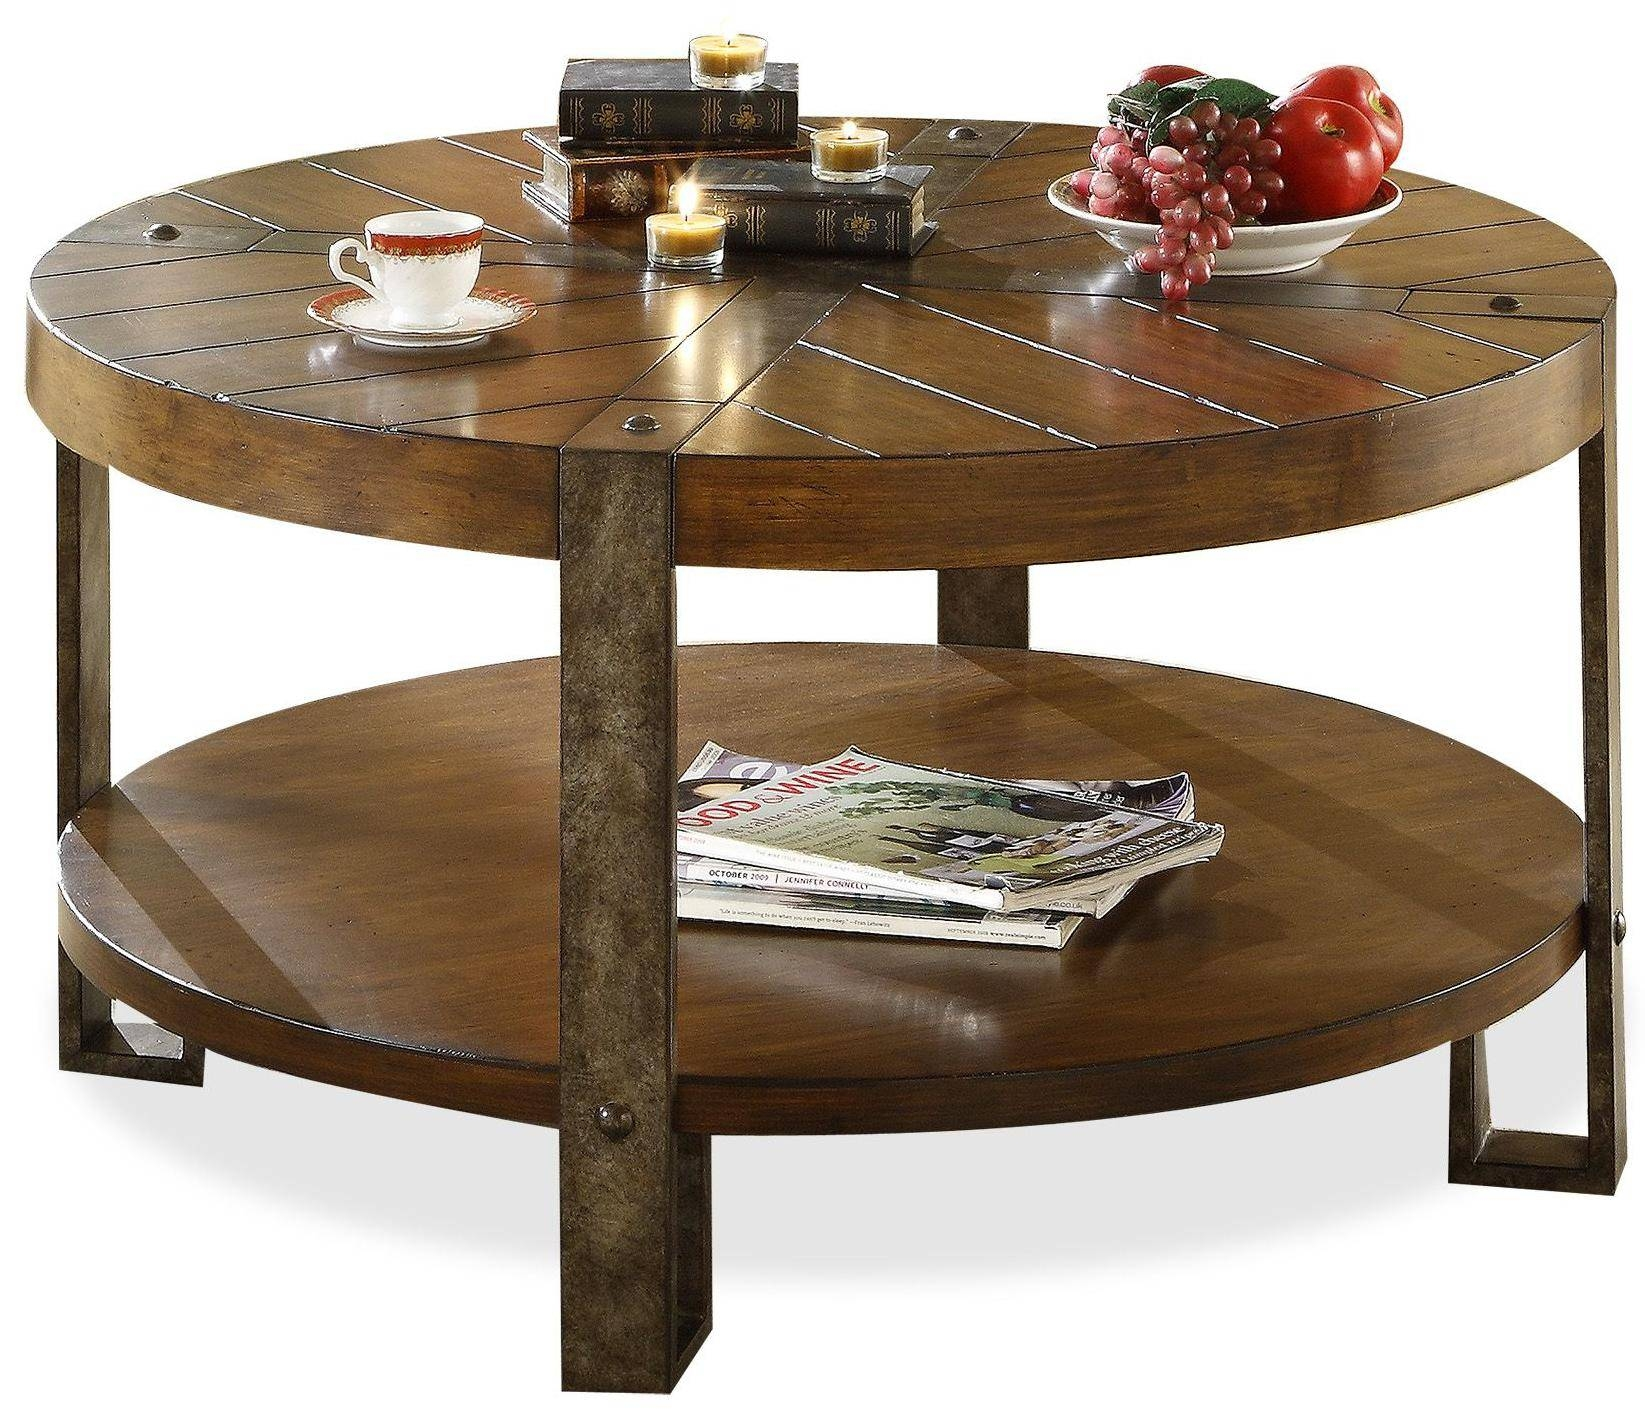 Awesome Round Coffee Tables With Storage | Homesfeed regarding Wooden Coffee Tables With Storage (Image 2 of 30)